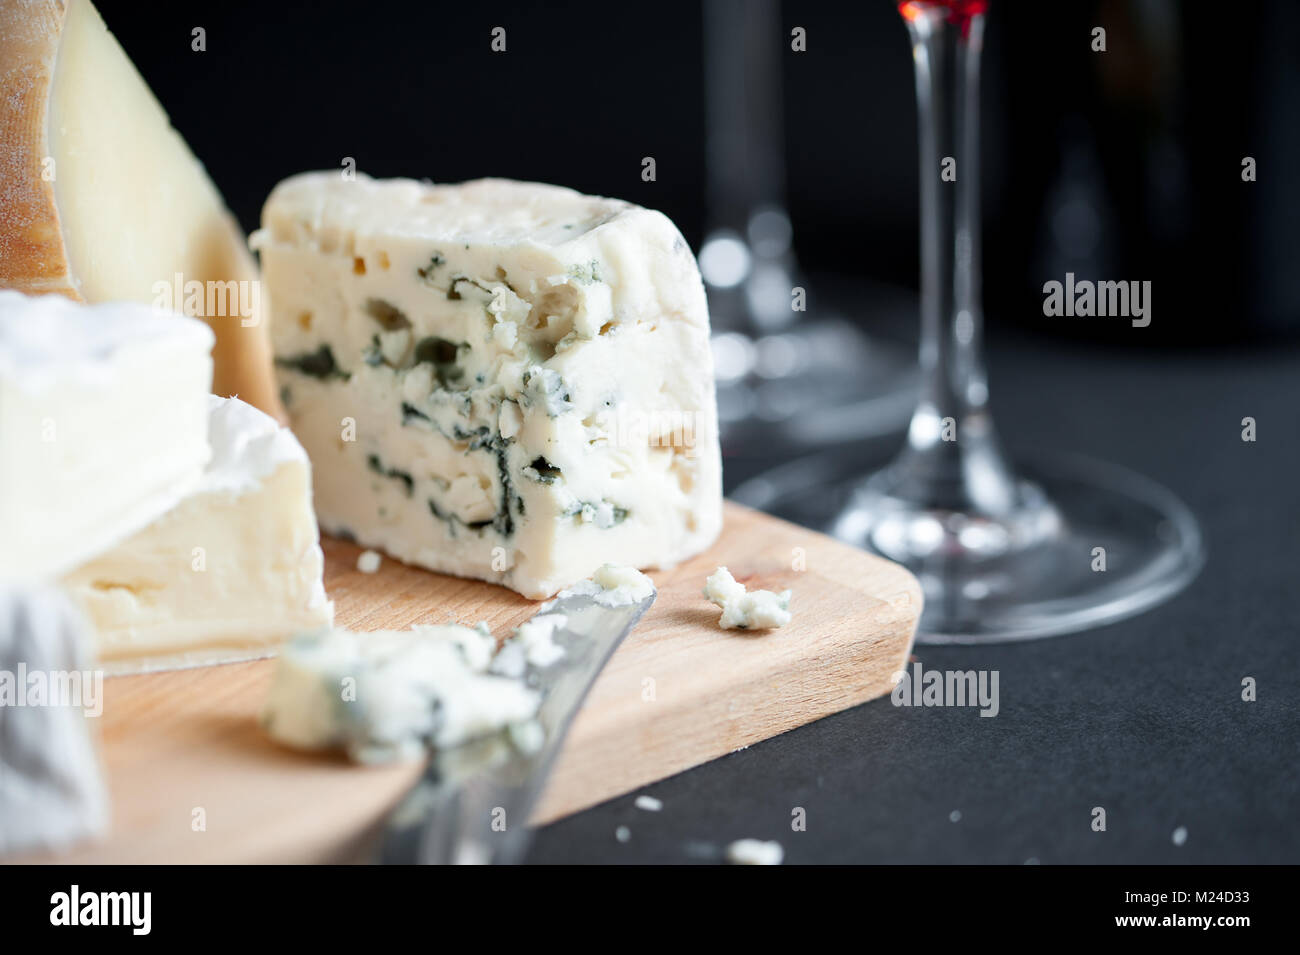 Cheese platter with piece of Roquefort cut by vintage knife and wine glasses on a backround. Black background. Macro - Stock Image